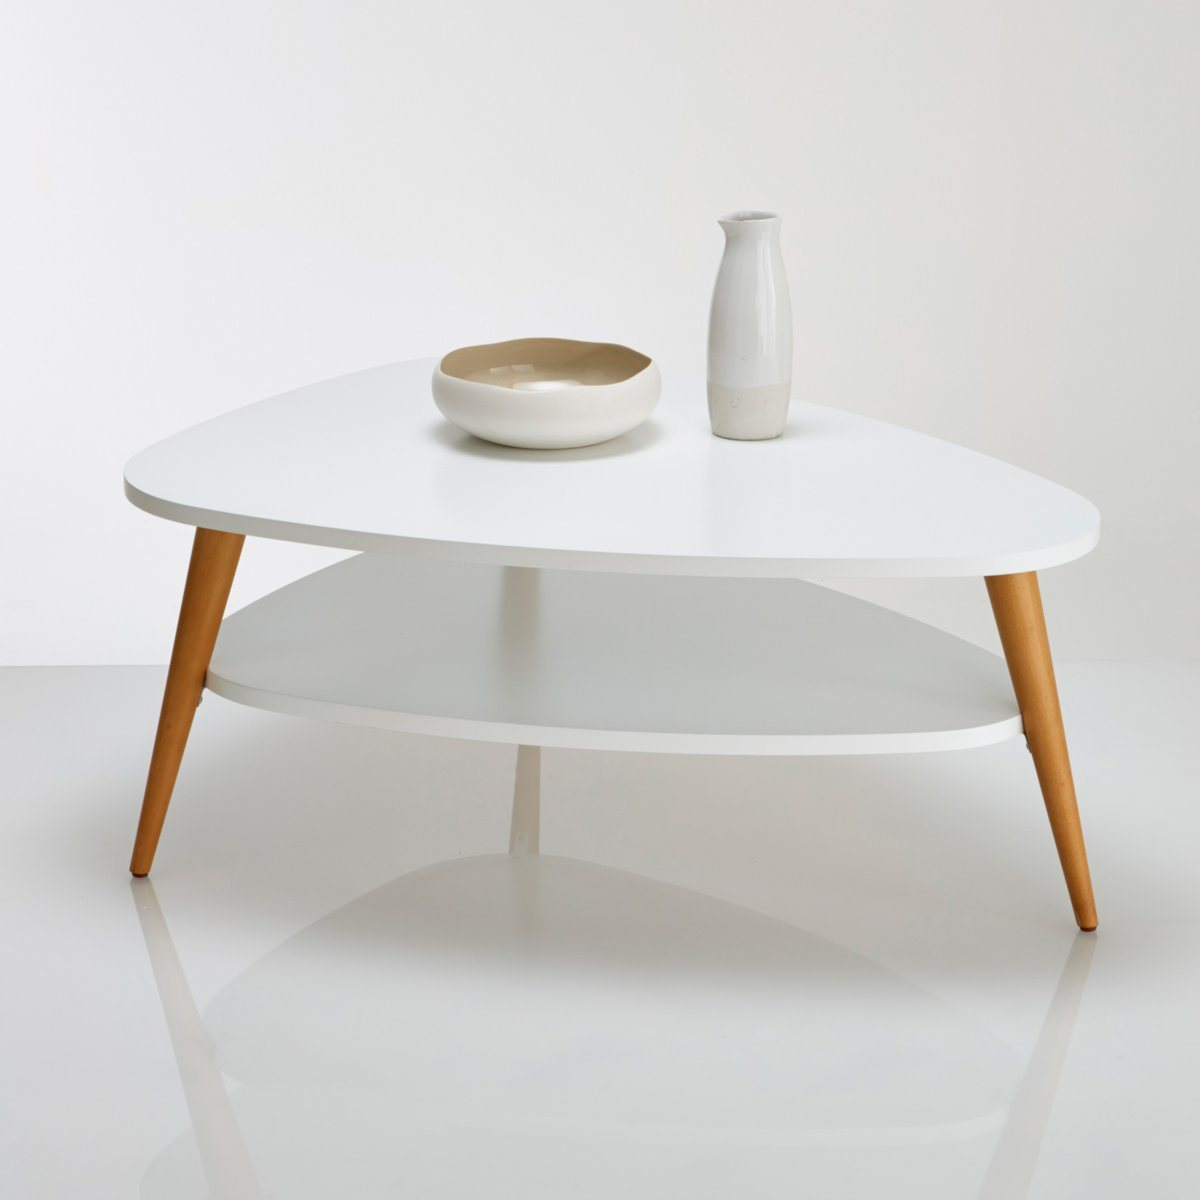 La table basse parfaite pour votre salon rise and shine for La redoute table